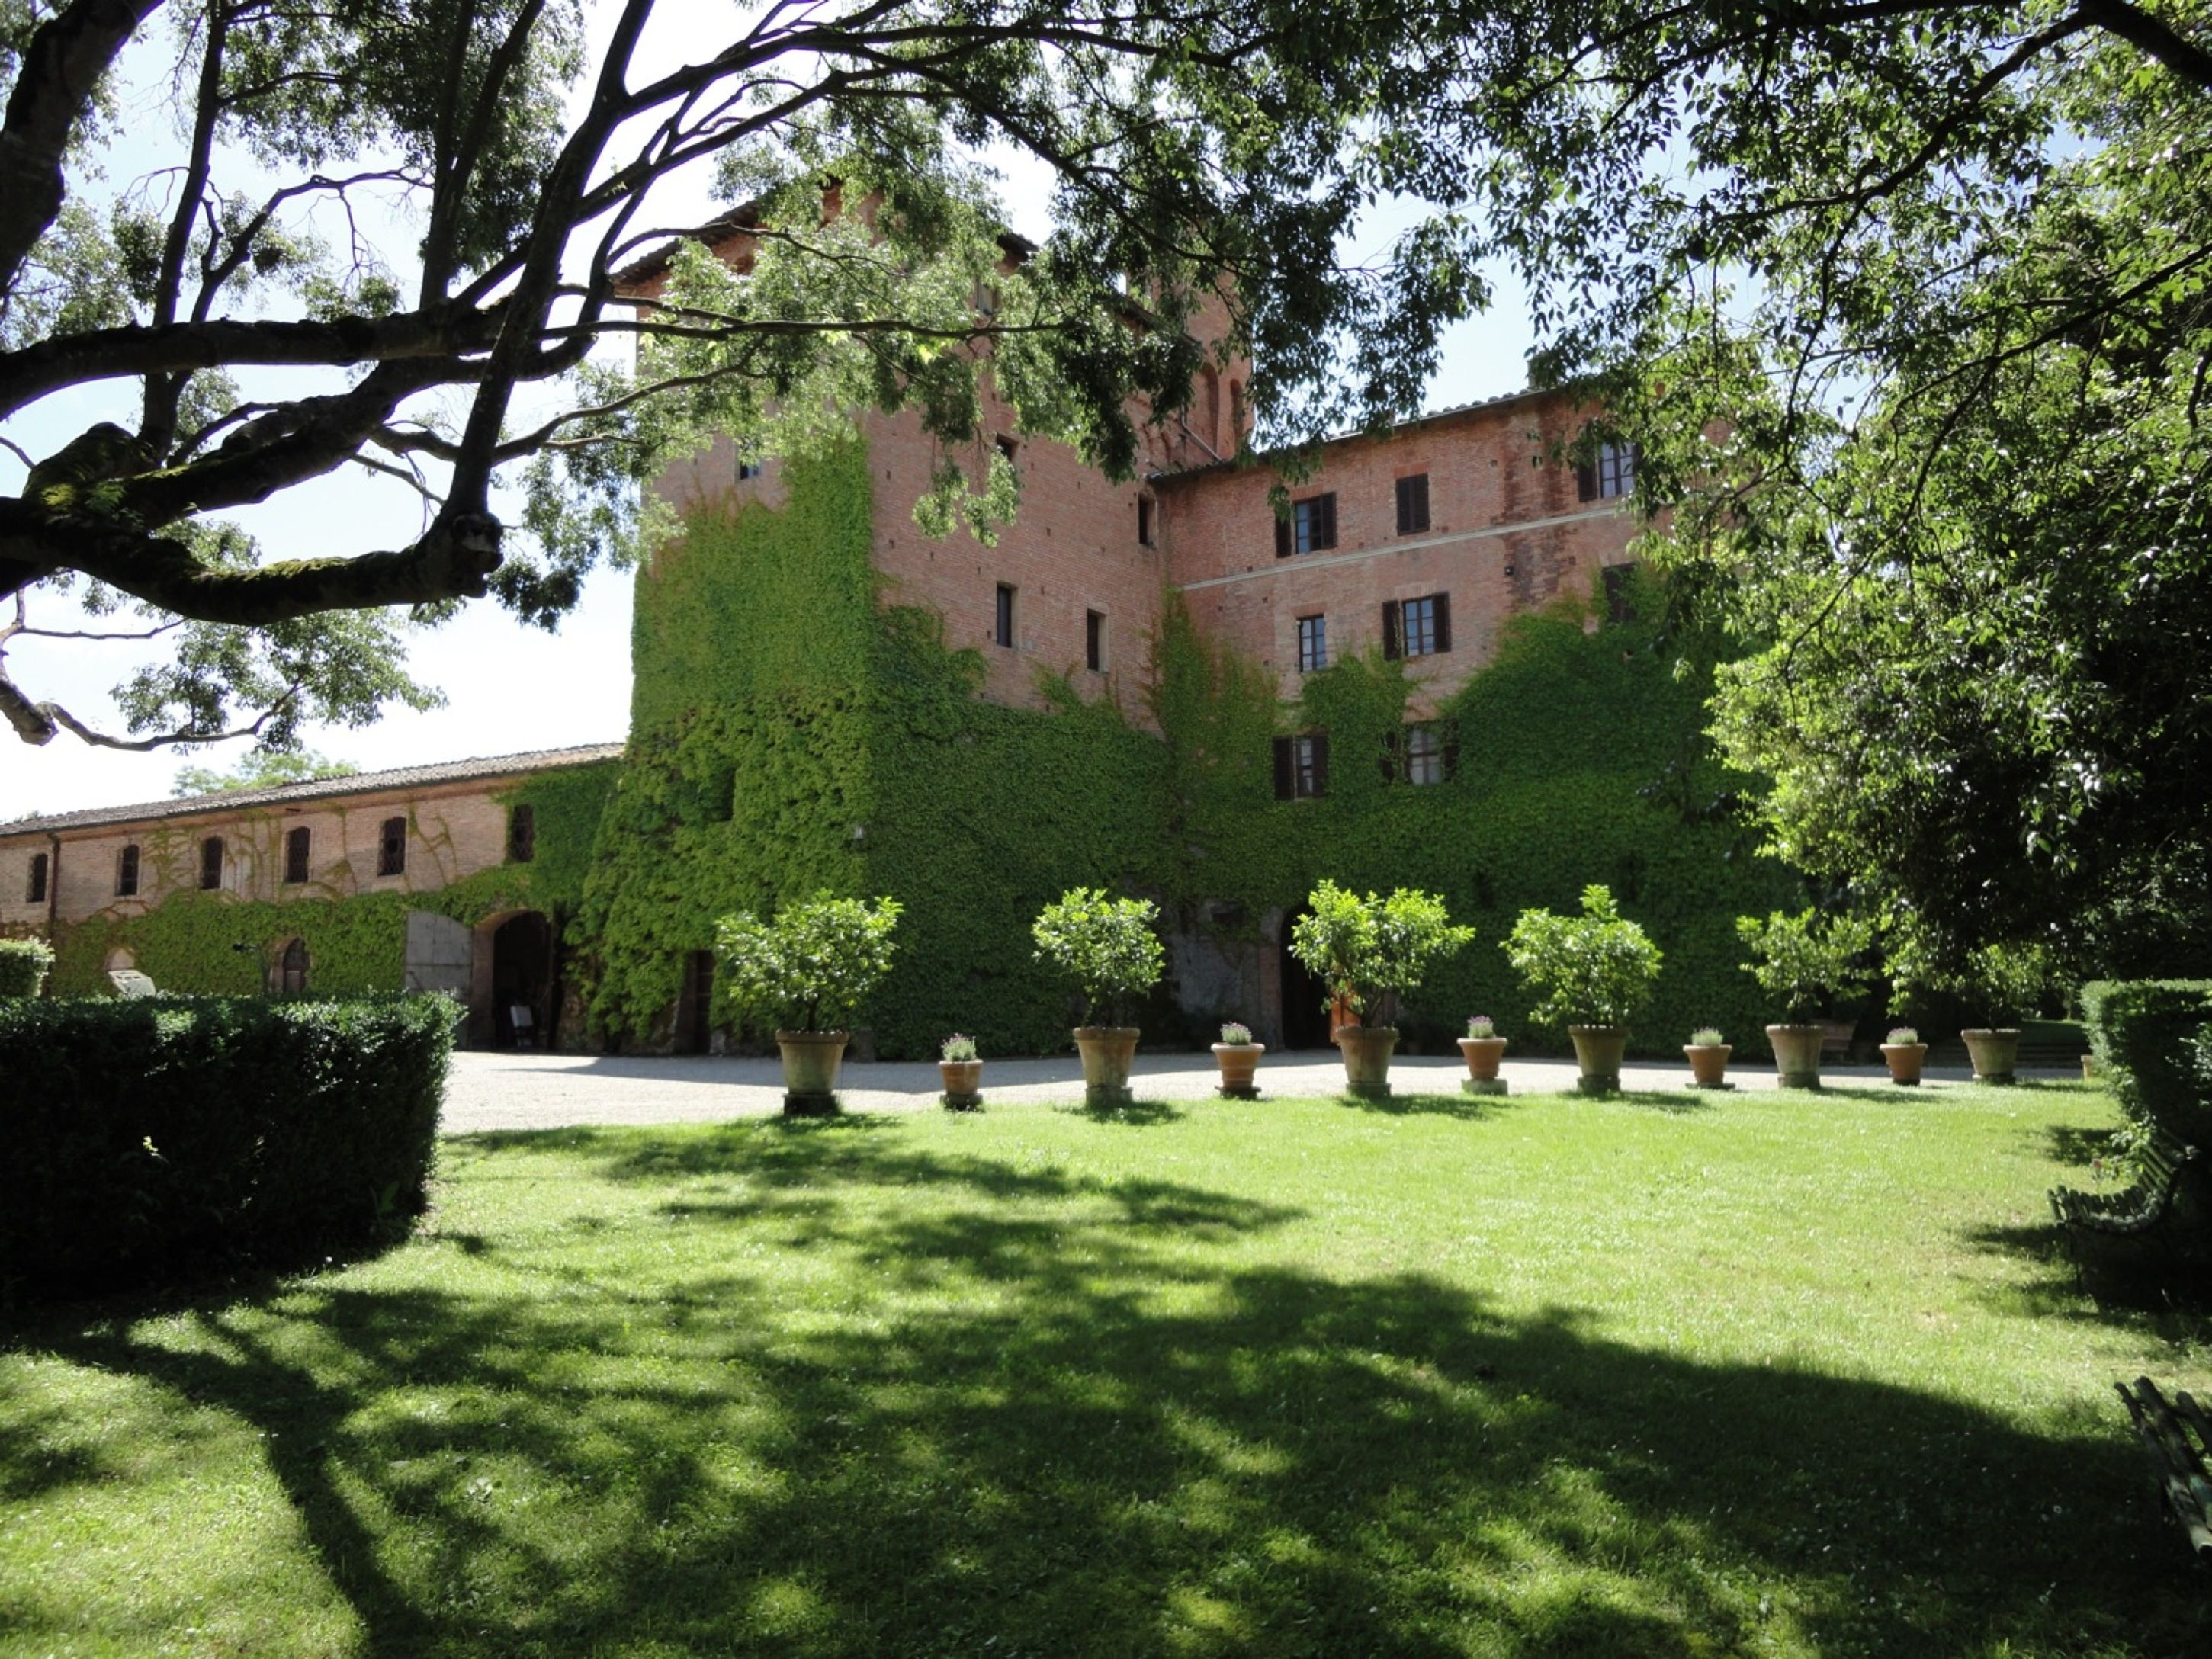 Castle of San Fabiano's Tower, the Main Villa, and the Old